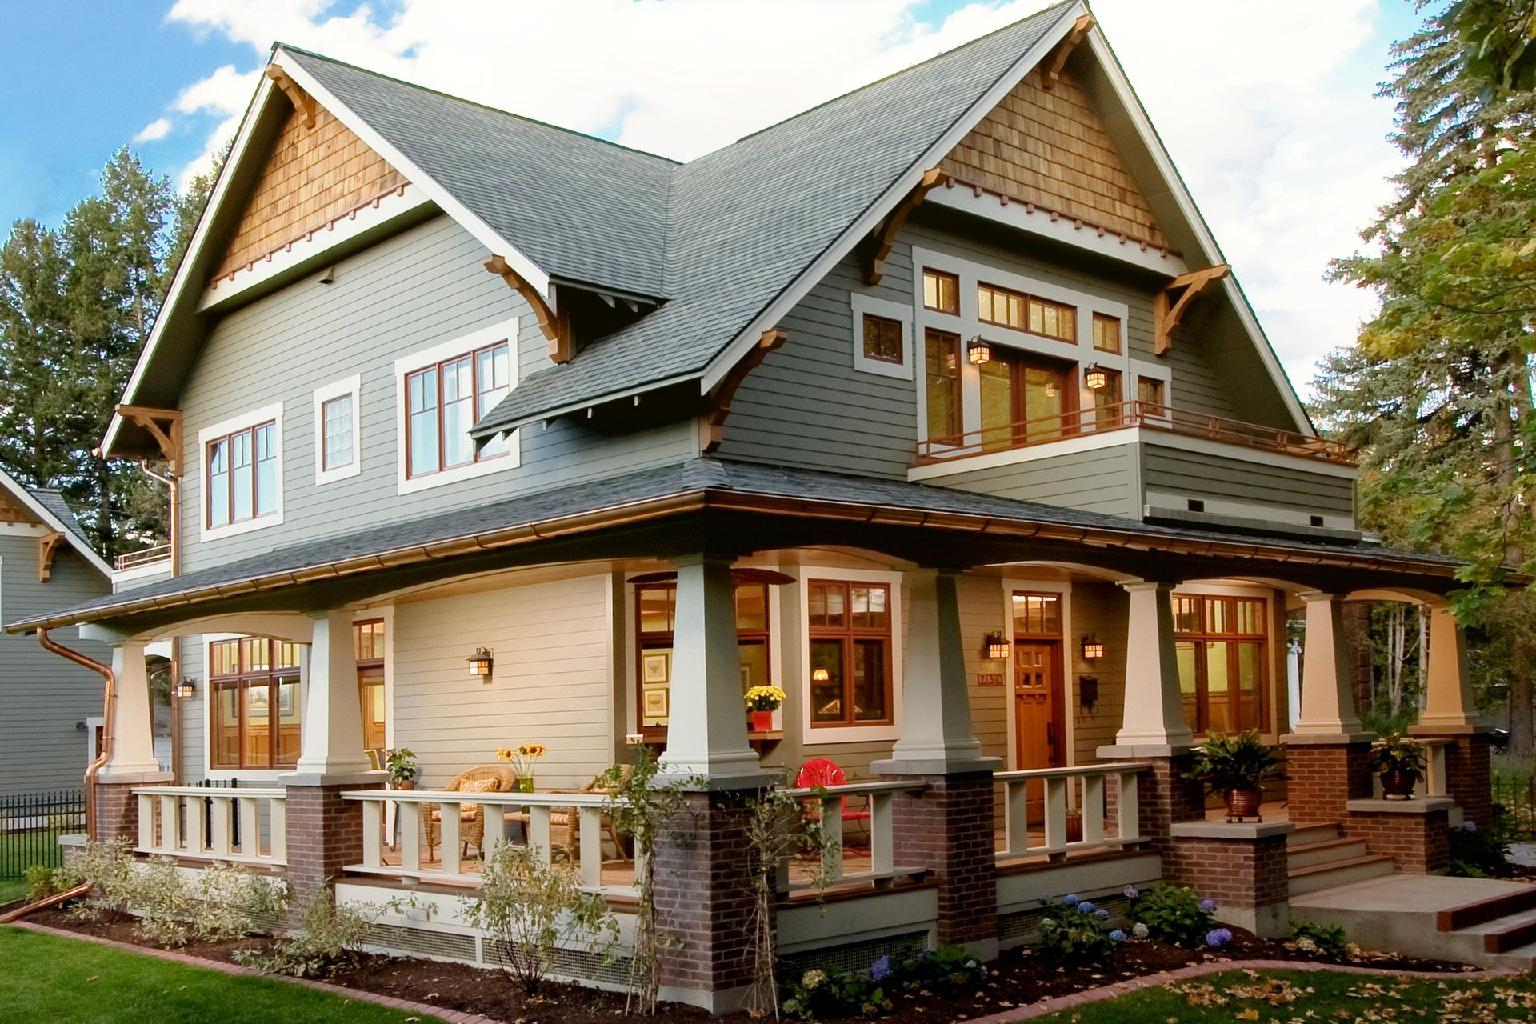 21 craftsman style house ideas with bedroom and kitchen included rh donpedrobrooklyn com